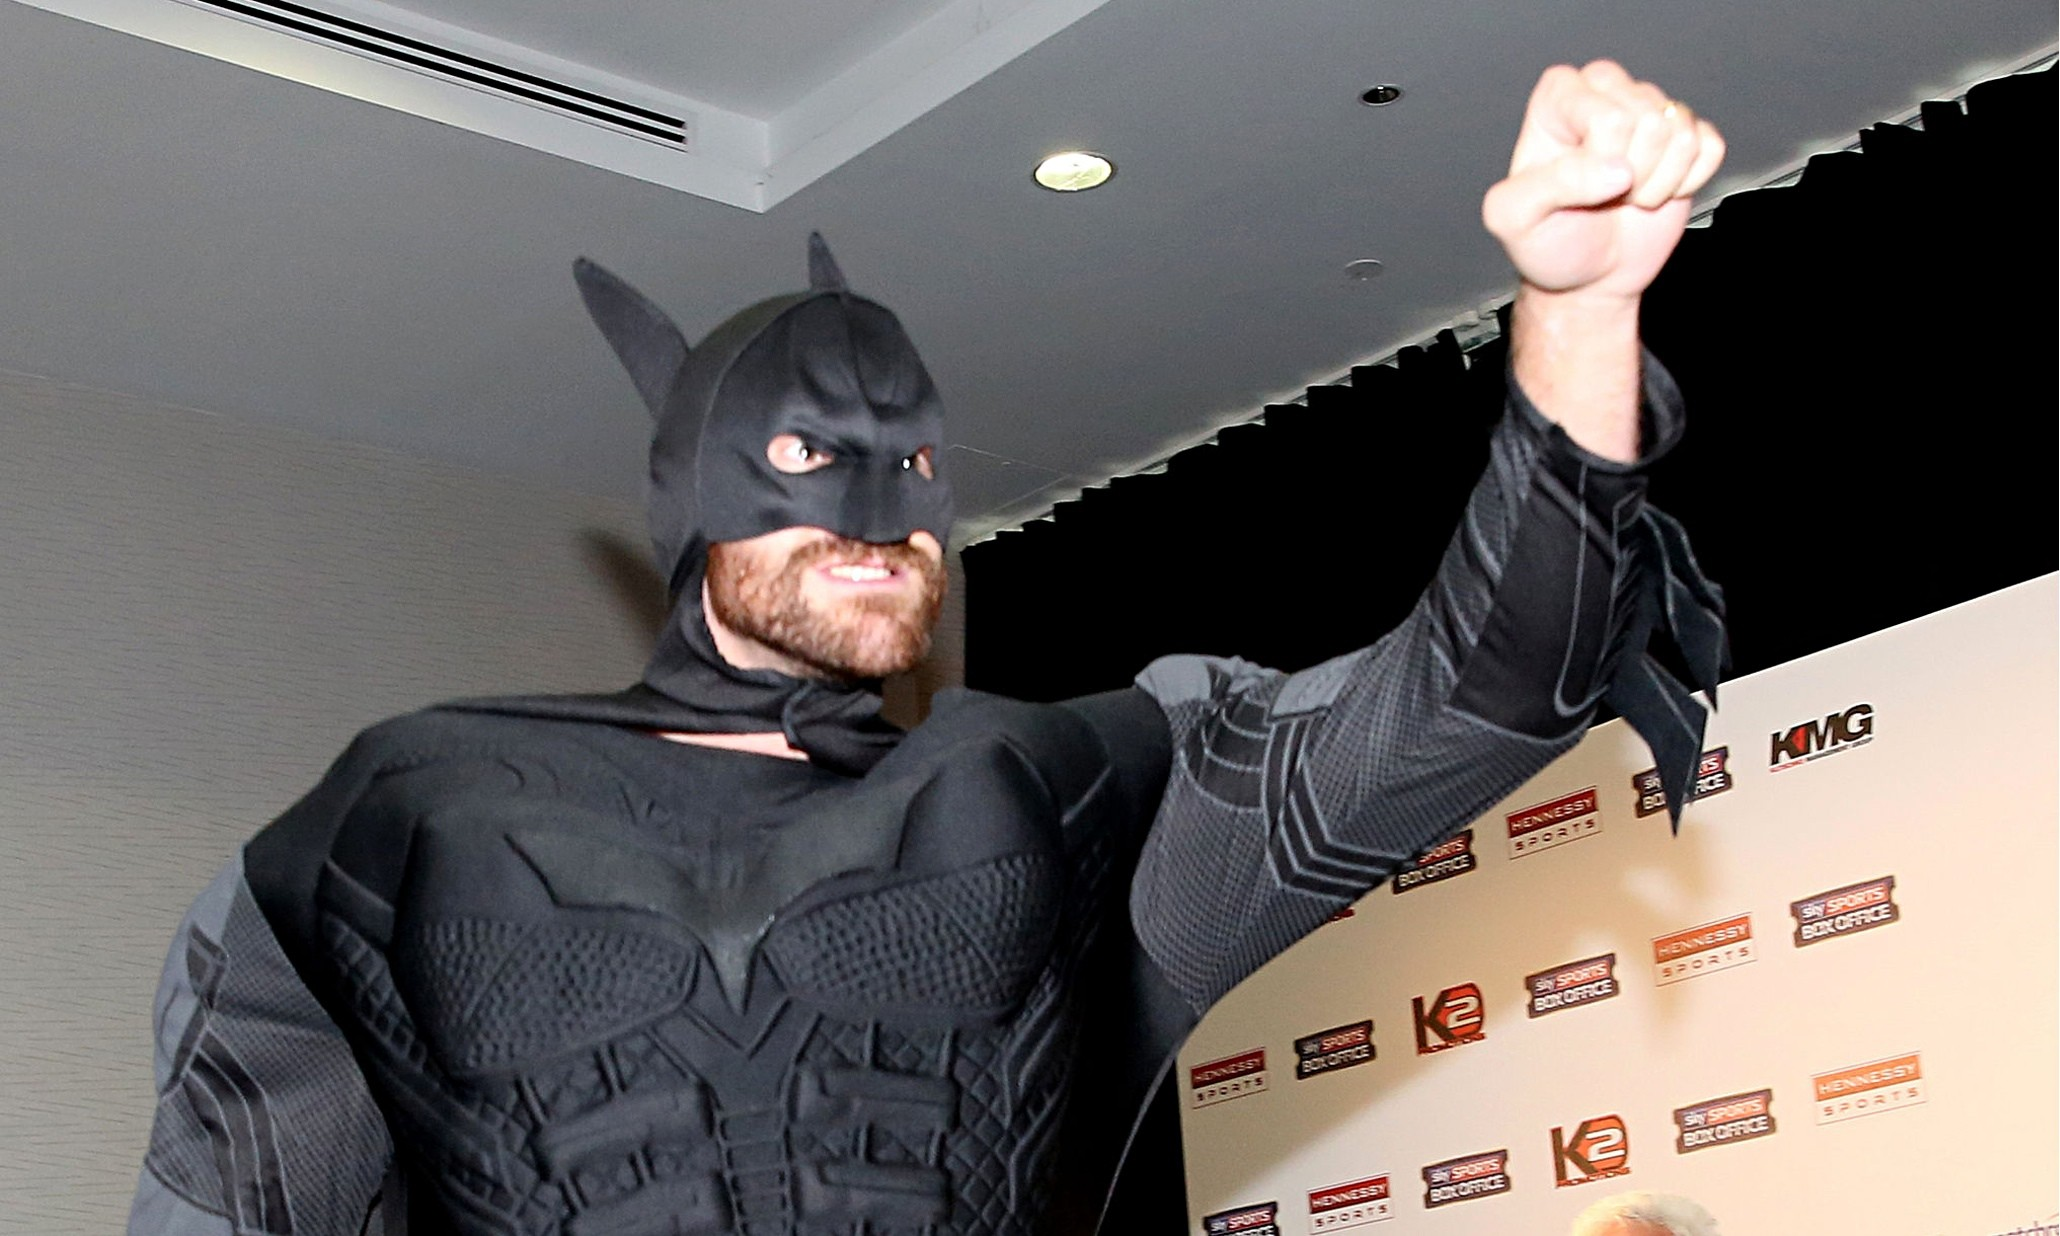 Tyson Fury emerges as the caped crusader in the buildup to his fight with Wladimir Klitschko.